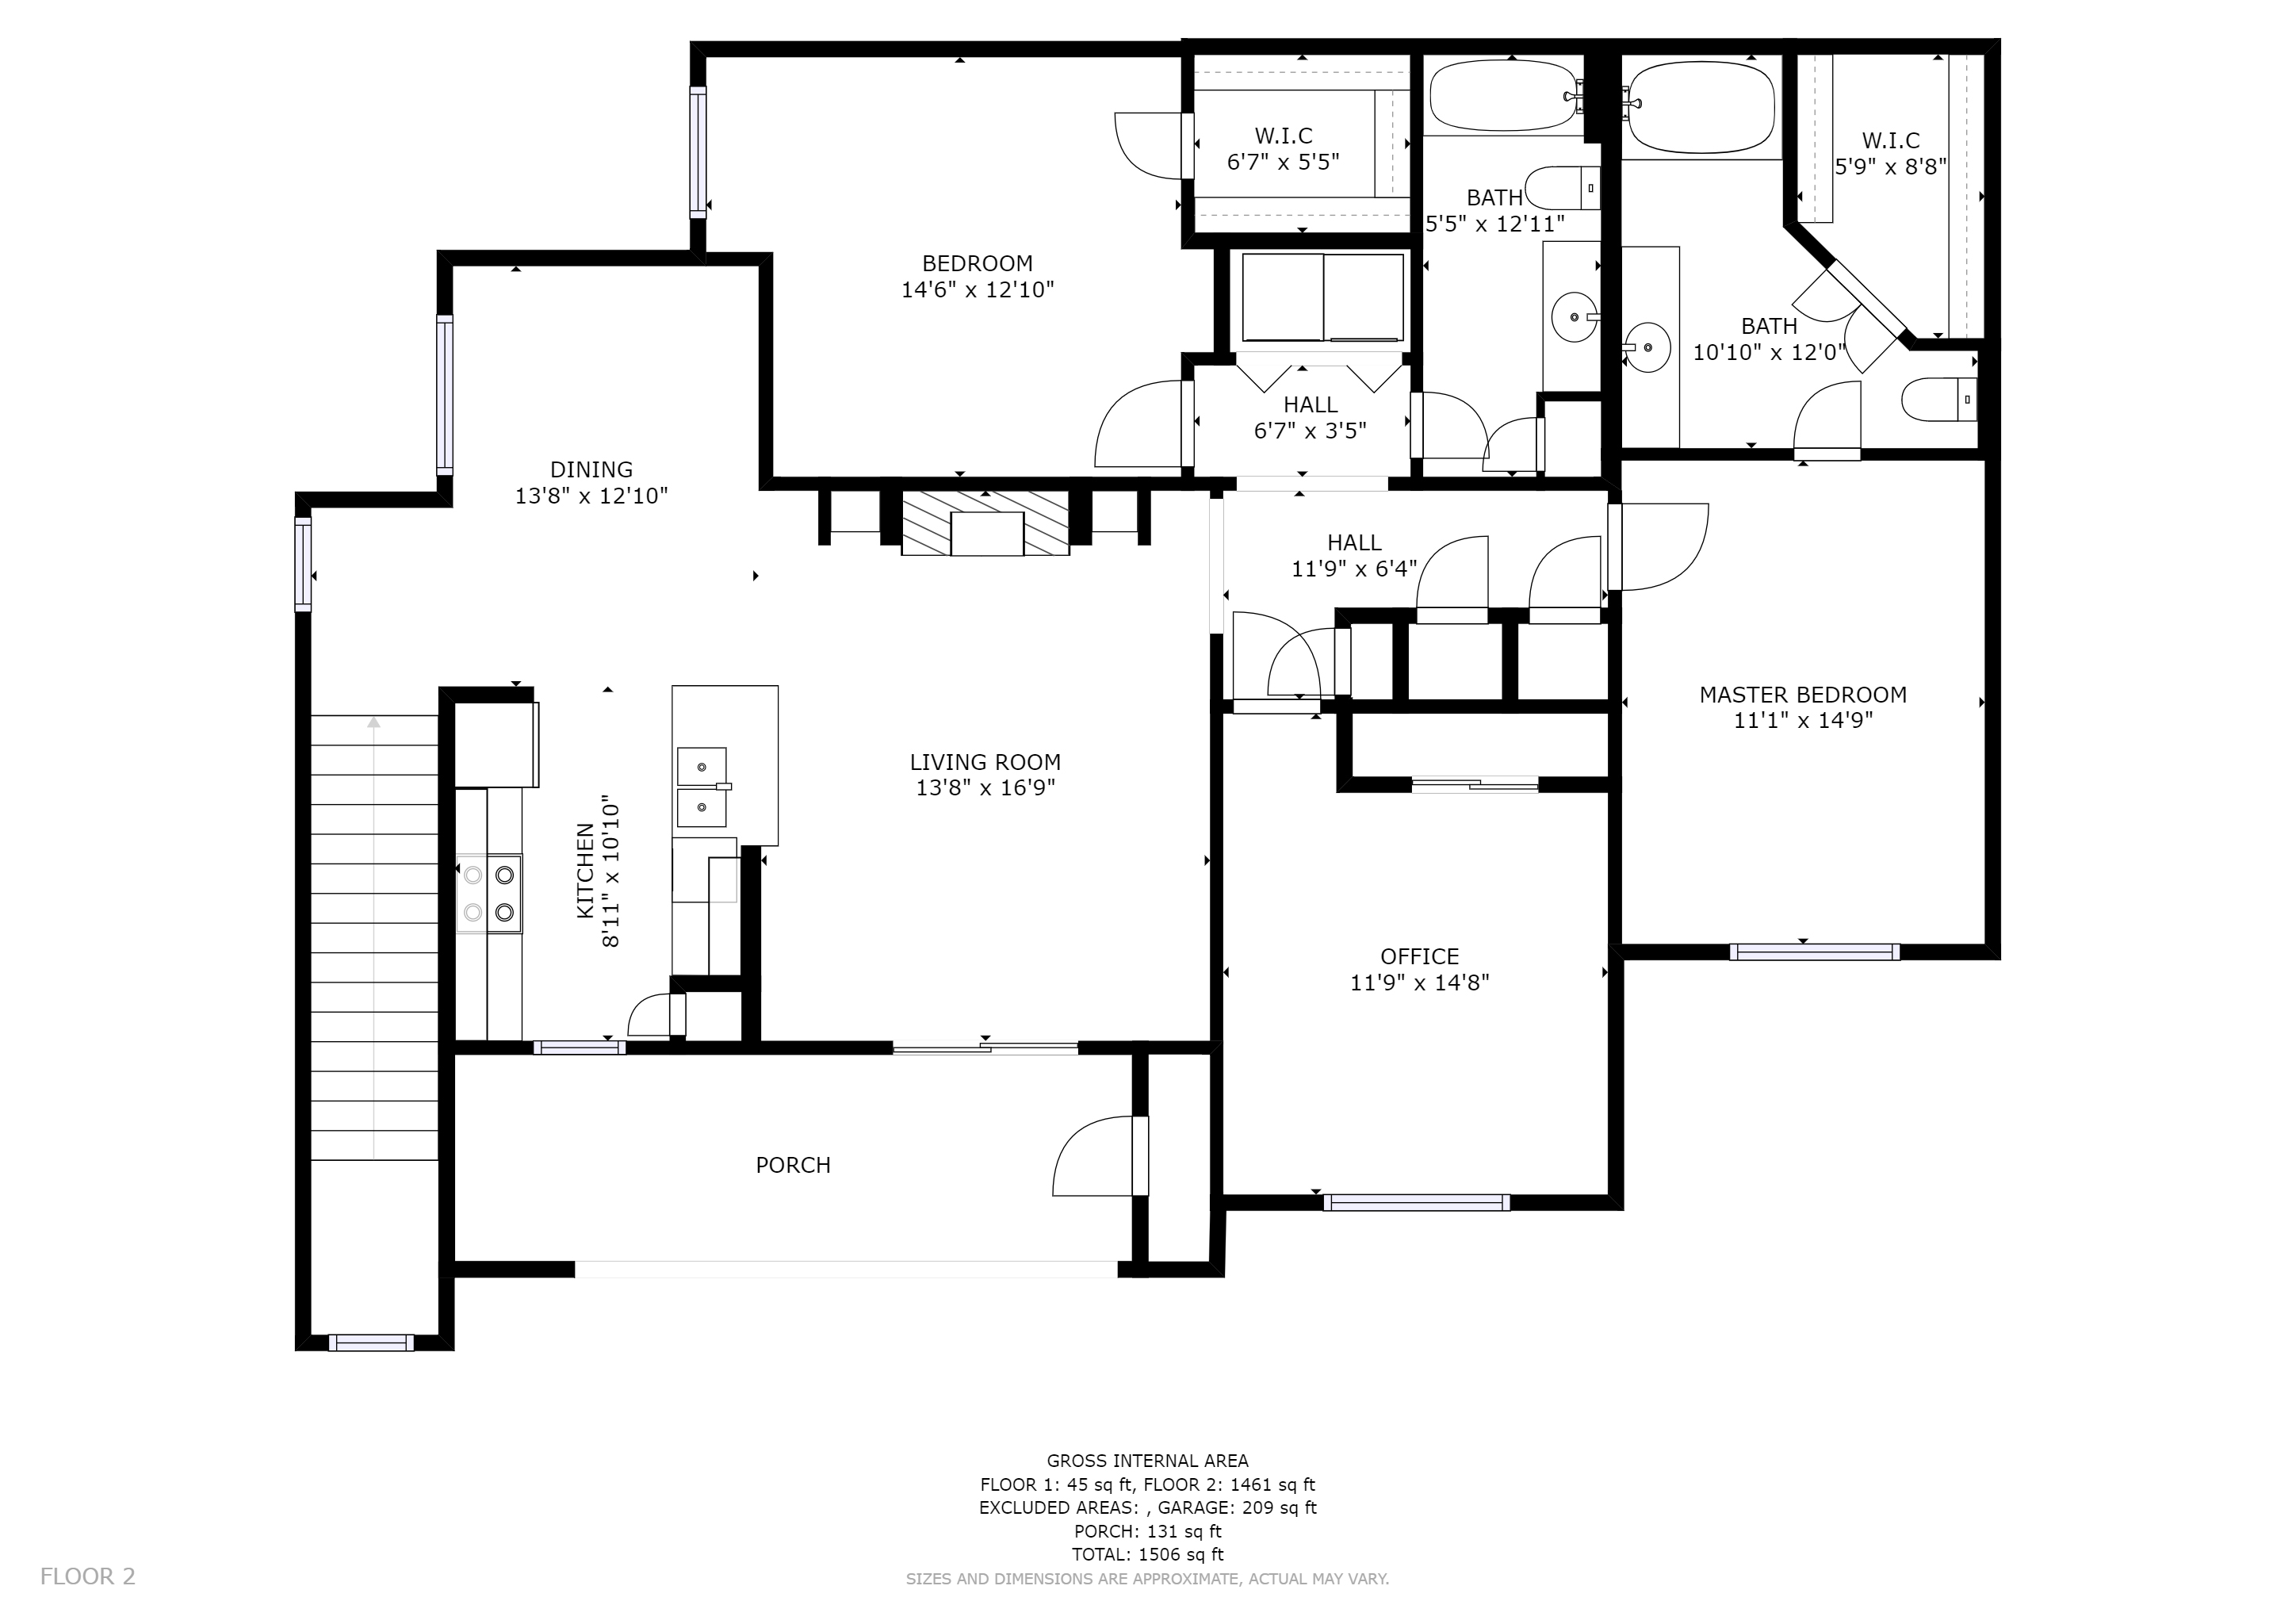 5620 Fossil Creek Pkwy #12201 Fort Collins, CO 80525